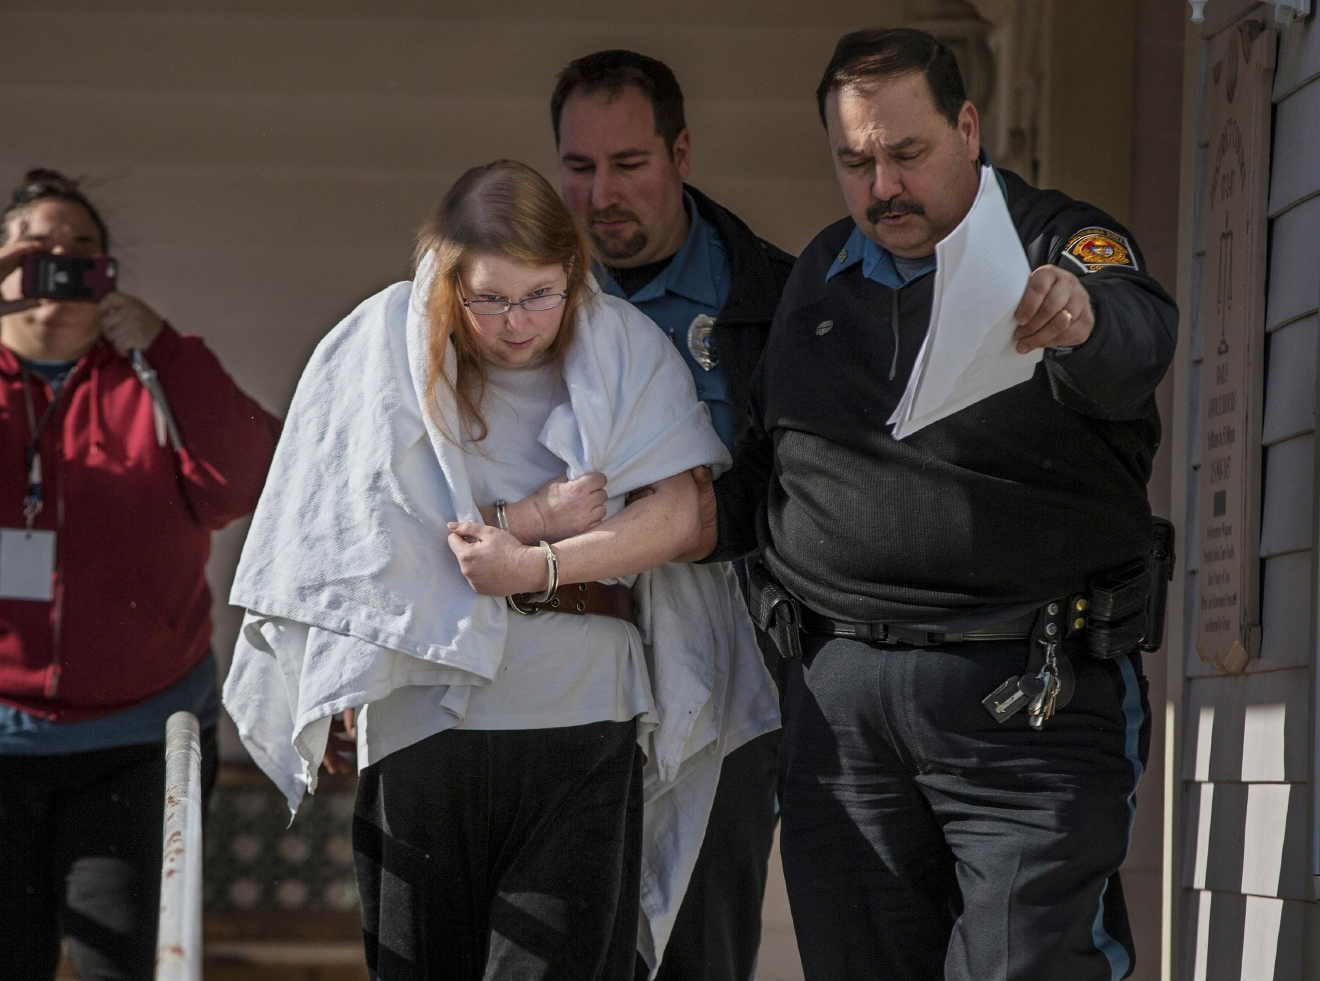 "Sara Packer, center, handcuffed, the adoptive mother of Grace Packer, was led out of District Court in Newtown, Pa., Sunday, Jan. 8, 2017, by Pennsylvania Constables and taken into custody. Packer, whose teenage daughter's dismembered remains were found in the woods last fall, has been charged along with her boyfriend Jacob Sullivan with killing the girl in a ""rape-murder fantasy"" the couple shared, a prosecutor said Sunday. (Michael Bryant/The Philadelphia Inquirer via AP)"